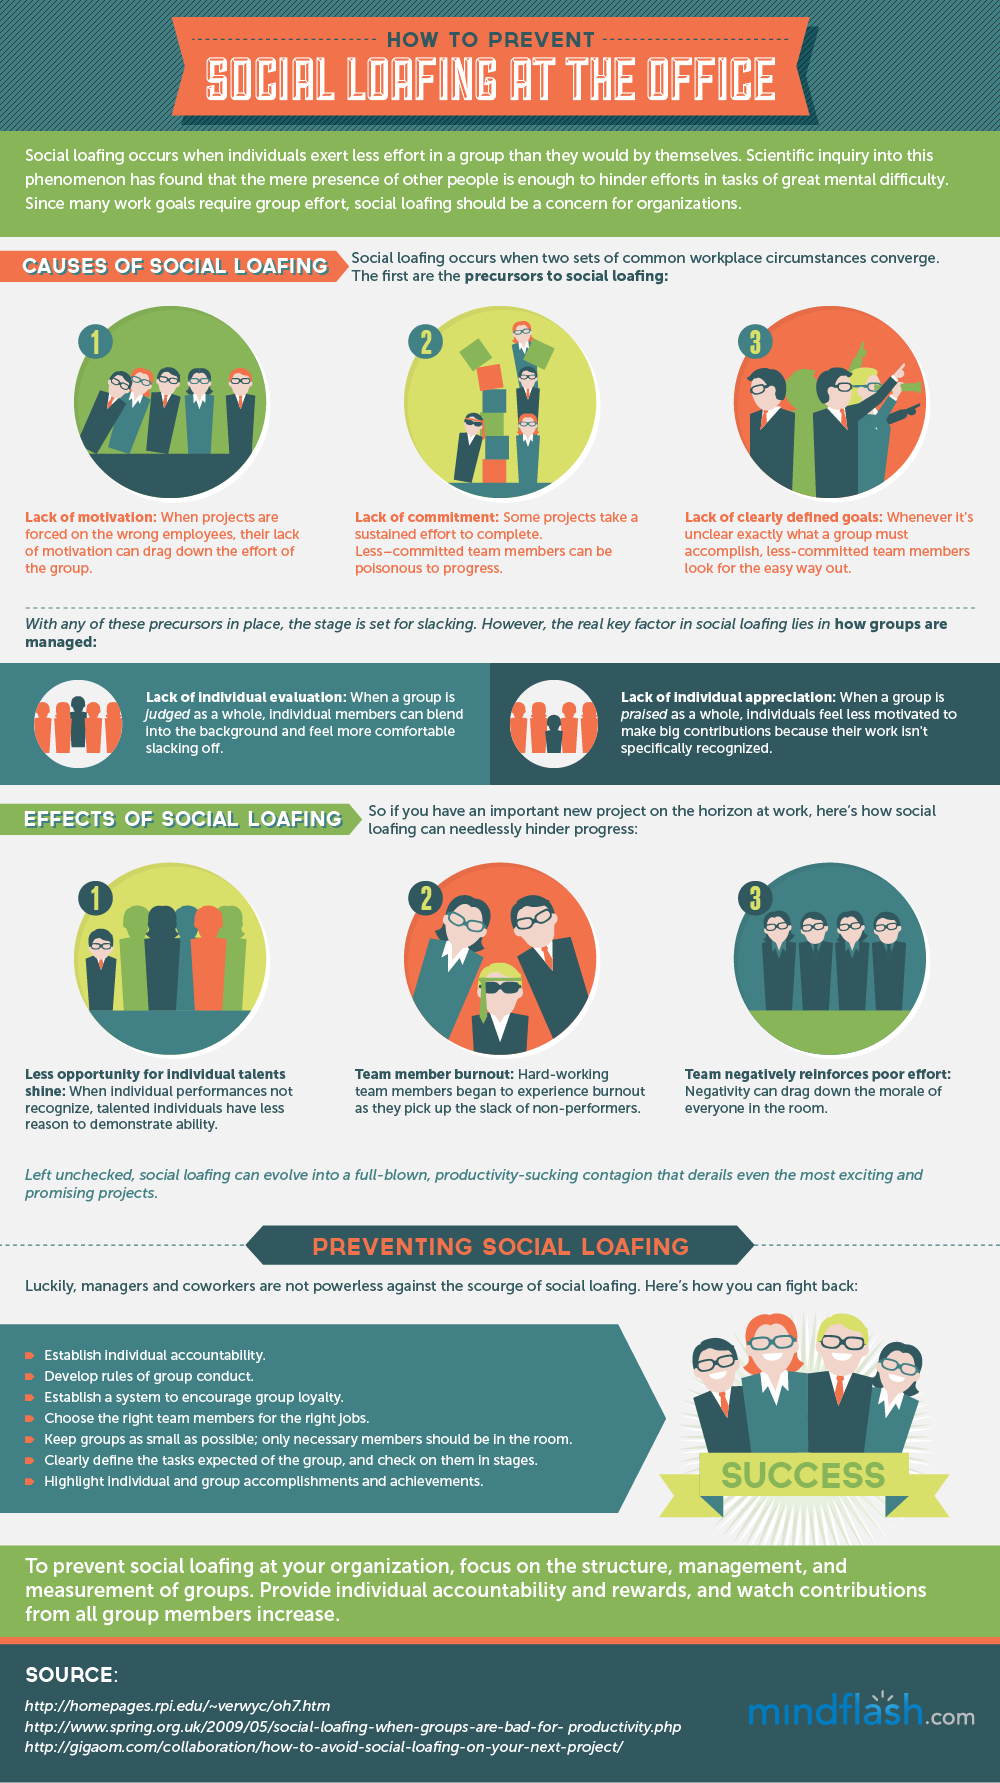 Infographic: How to Prevent Social Loafing at the Office